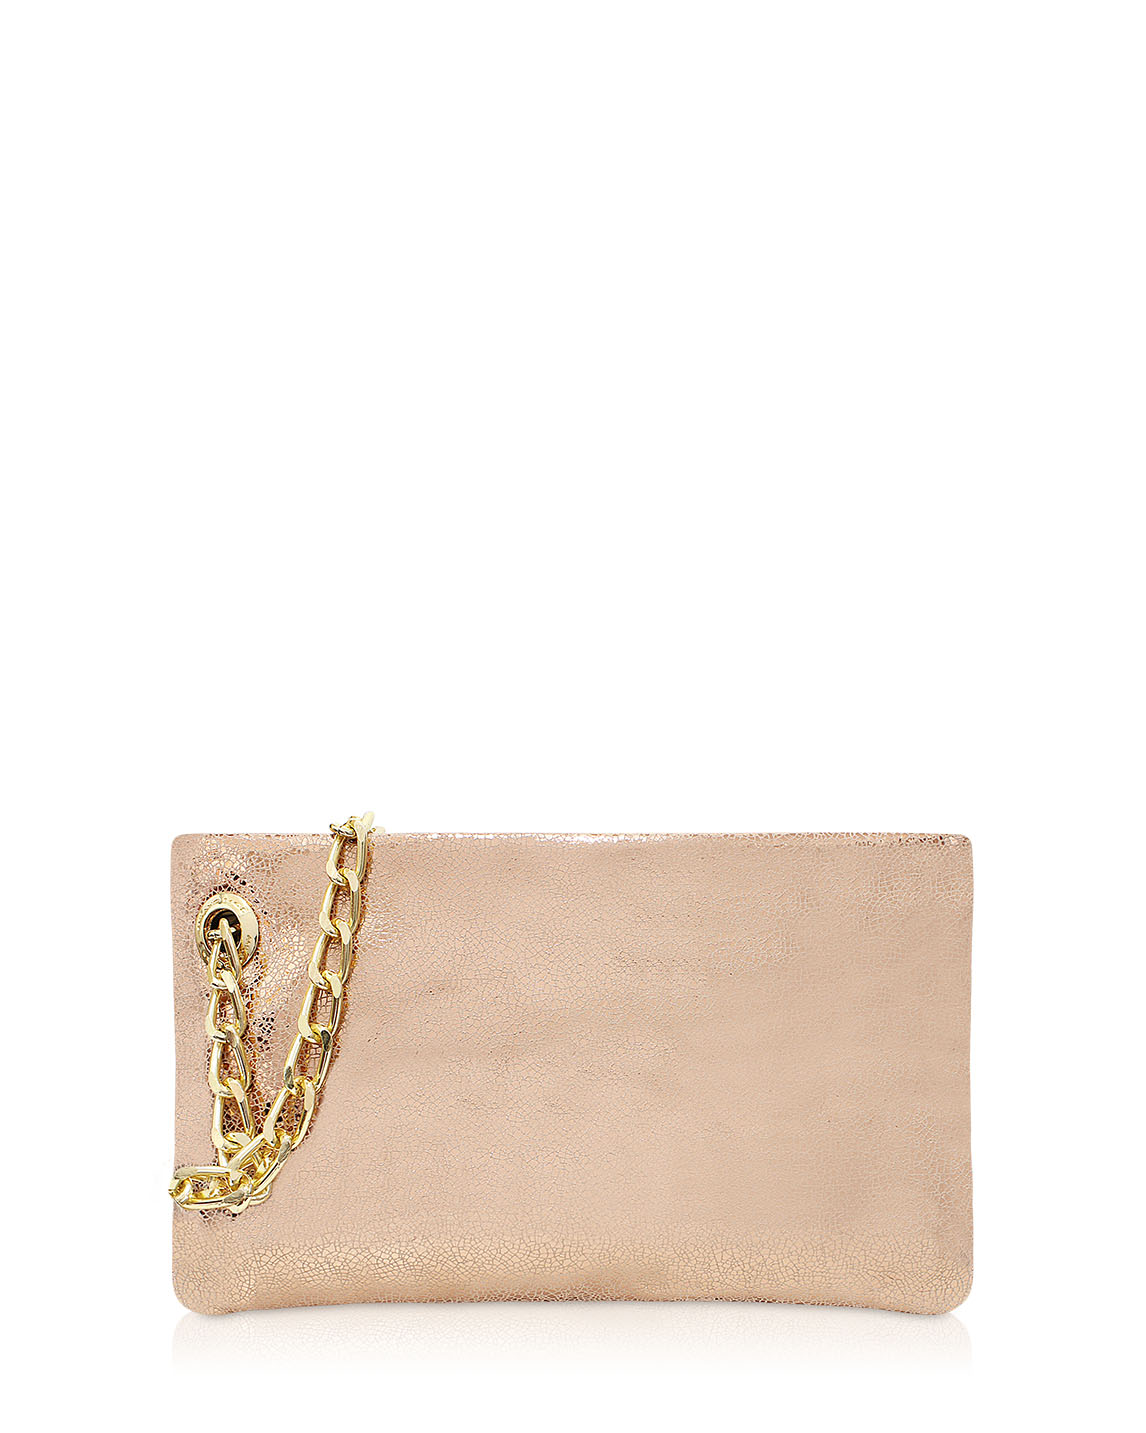 Carteras Clutch & Evening Bag DS-2799 Color Cobre